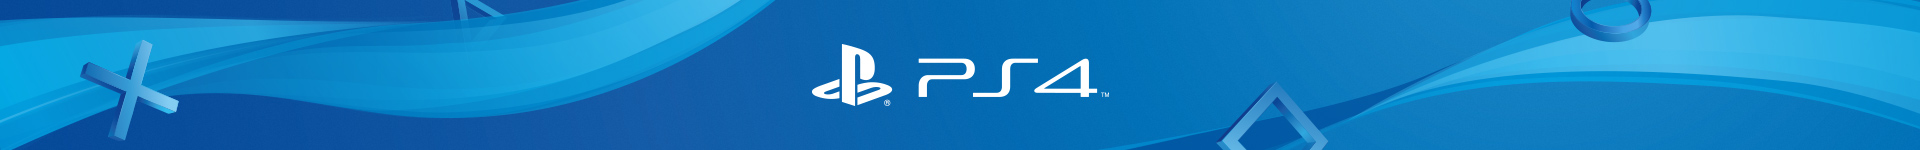 Buy downloads for Playstation 4 at Coolshop